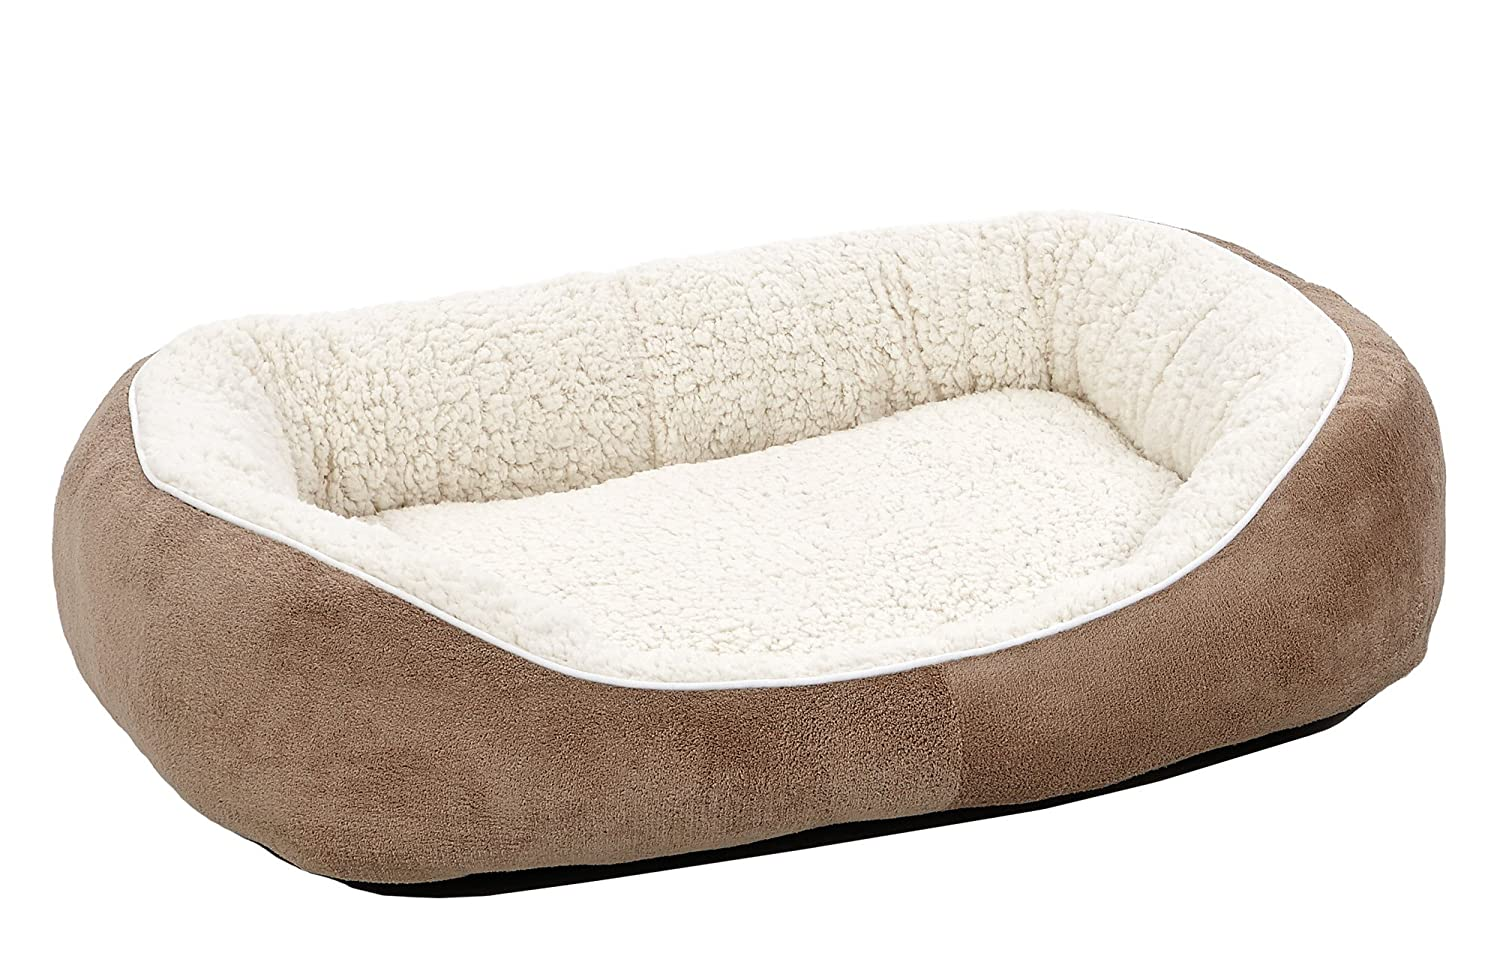 Quiet Time Overstuffed Cuddle Bed for Cats & Dogs